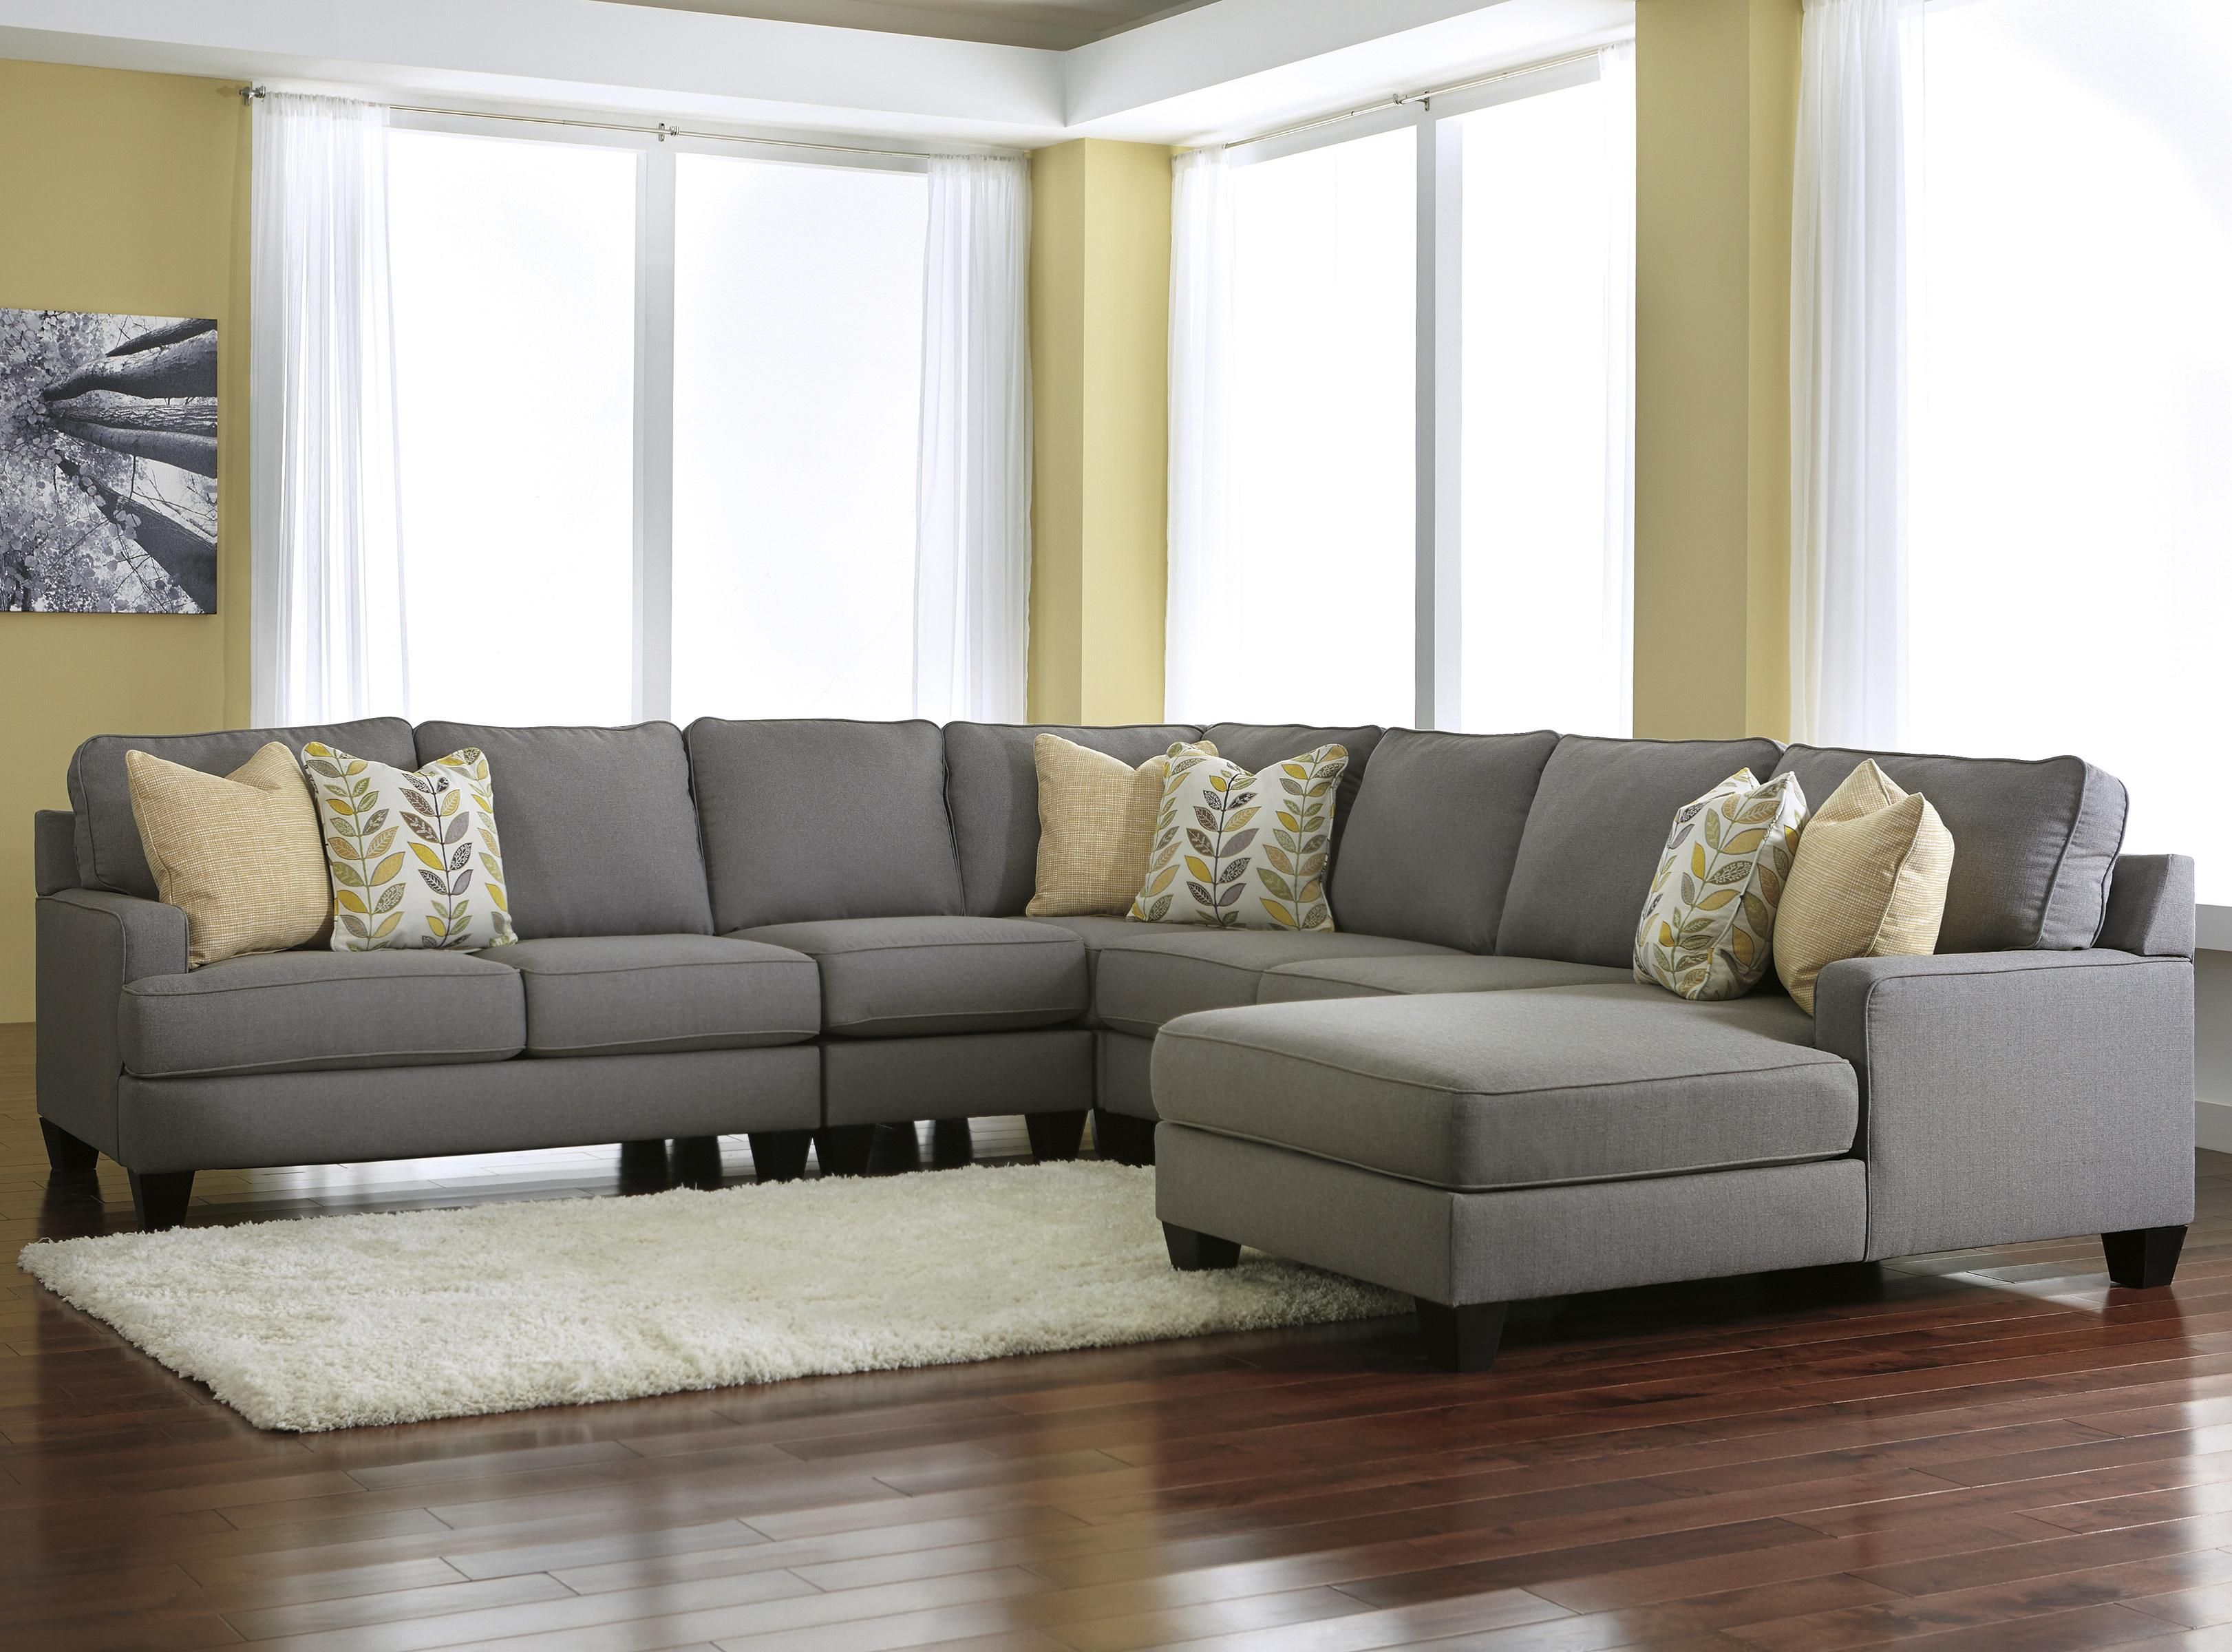 Chamberly Alloy 5 Piece Sectional Sofa With Right Chaise By Signature Design By Ashley I Want This Sectiona Living Room Sectional Furniture Ashley Furniture